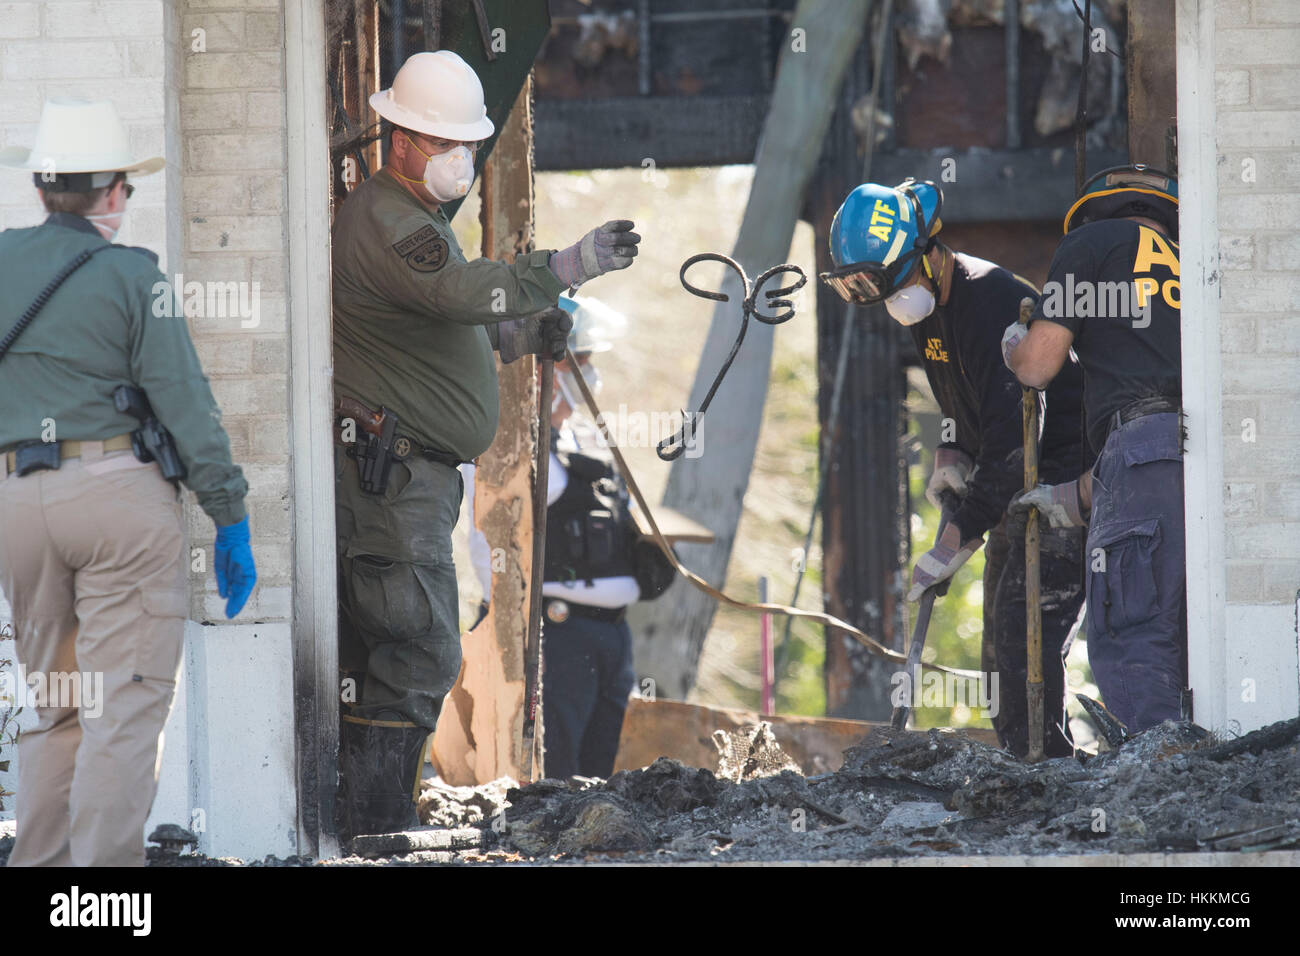 The FBI, federal Bureau of Alcohol, Tobacco and Firearms, and other agencies sift through burned rubble for clues - Stock Image